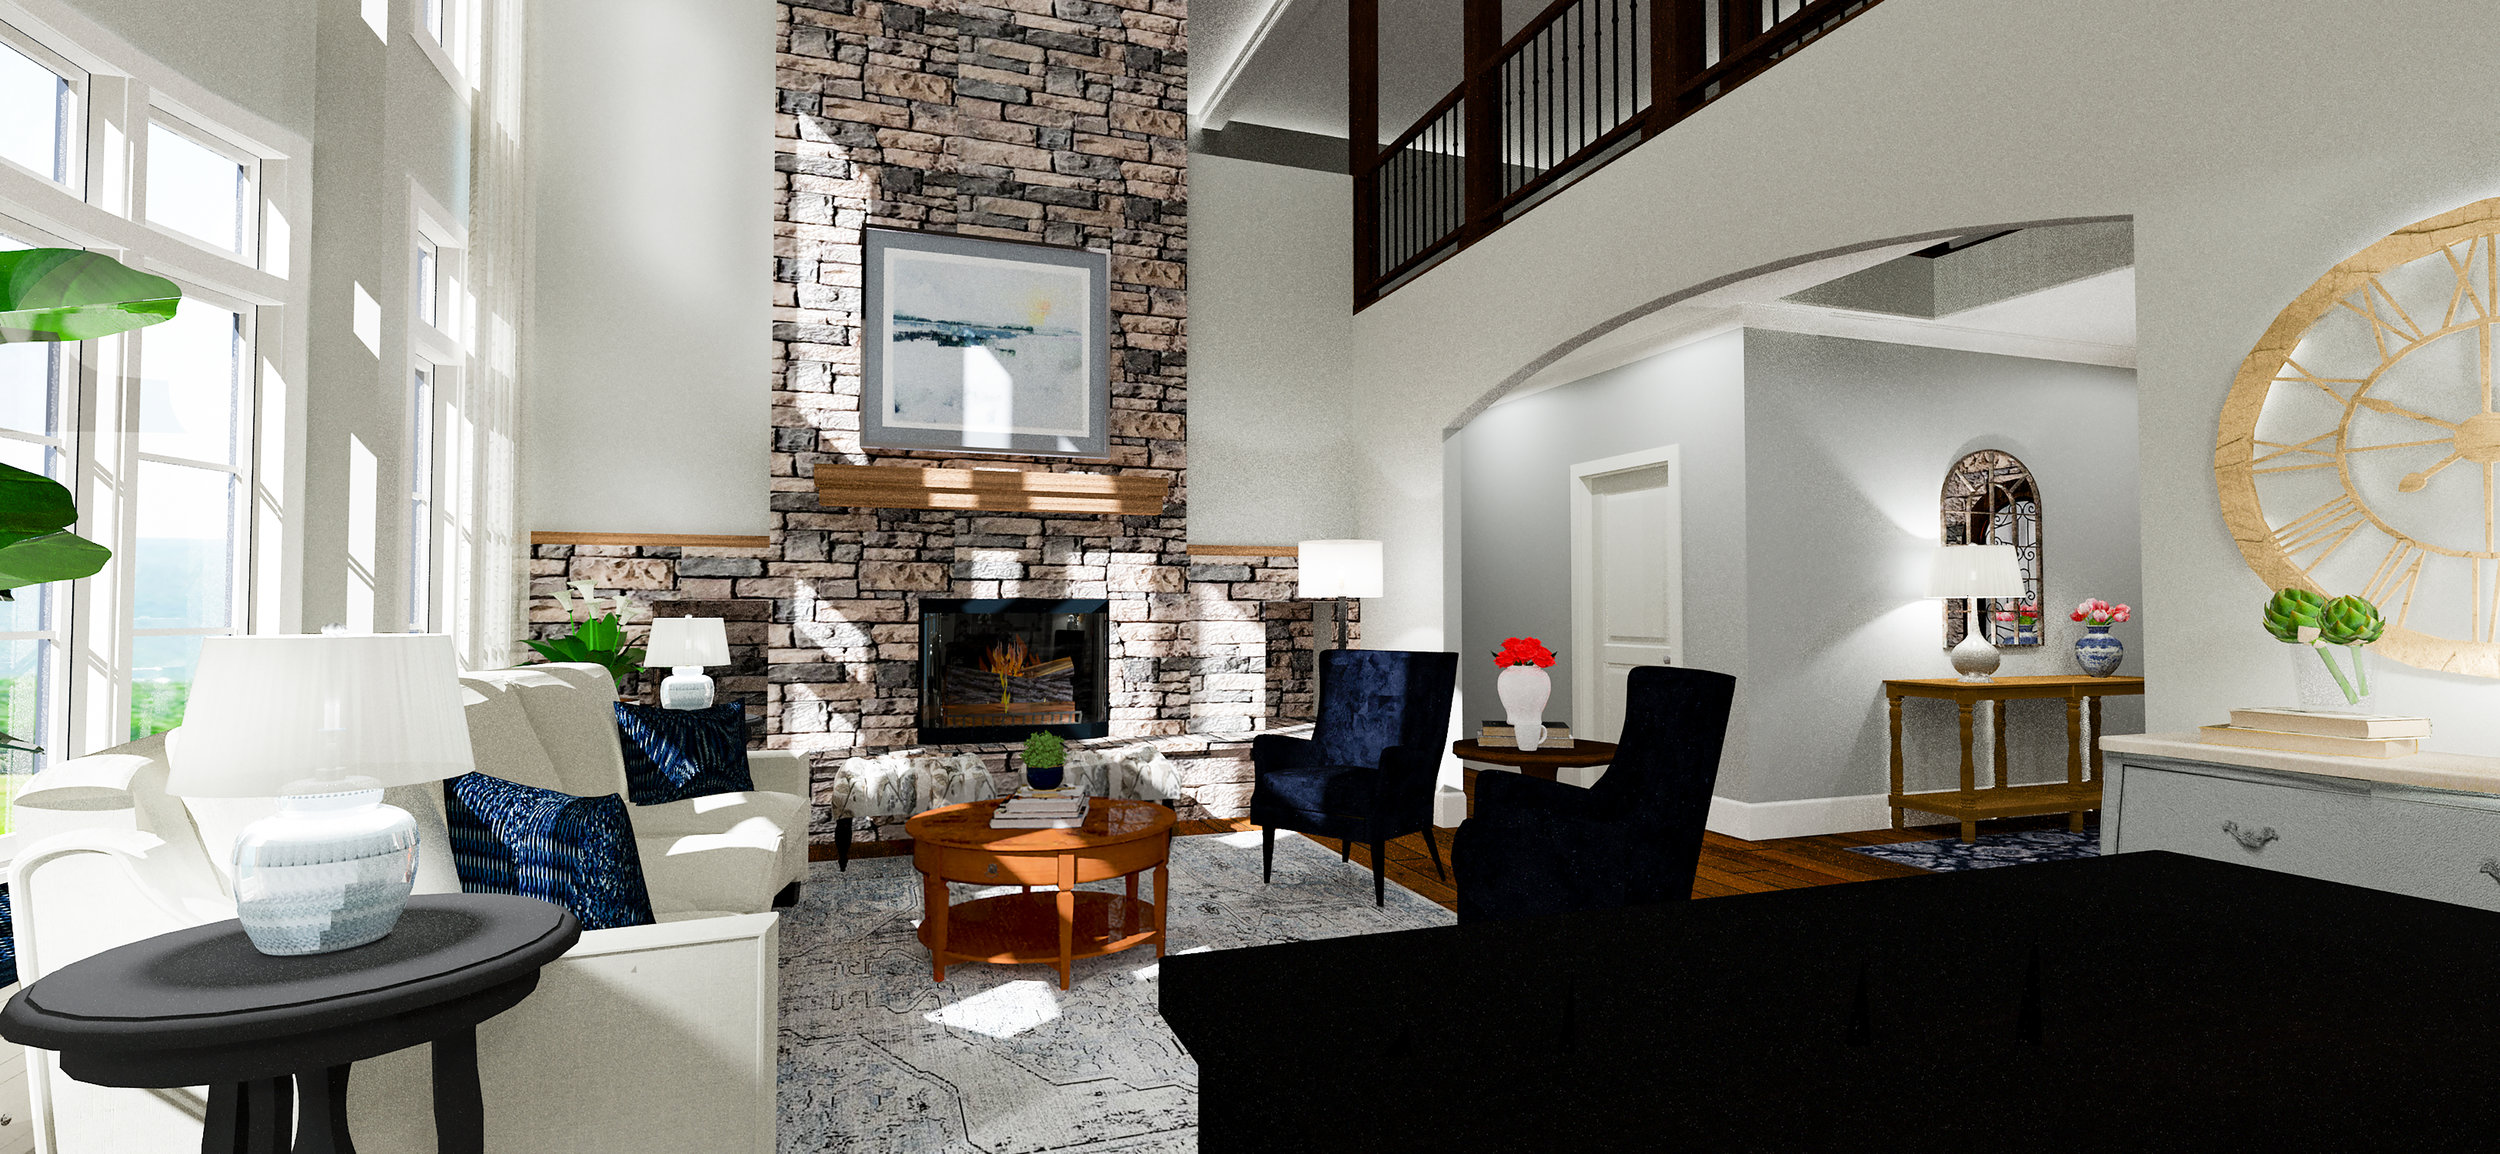 Living Room Rendering with Fireplace | Designed by Karen Grant Interiors.jpg